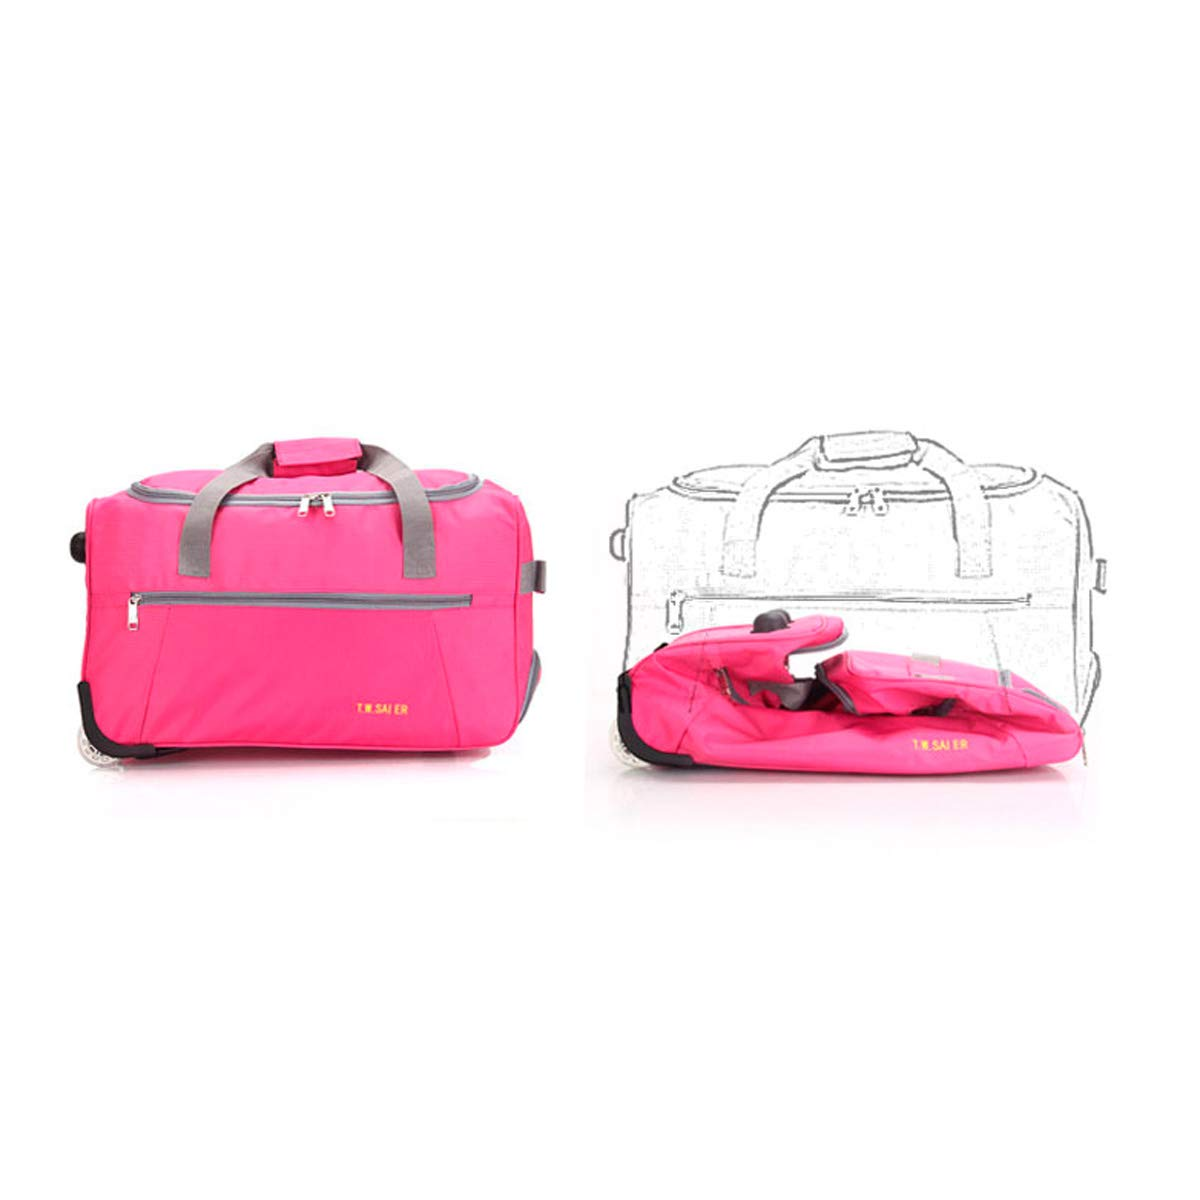 22 Inches Travel Case Simple Color : Pink Travel Storage Box Red The Latest Style Huijunwenti Trolley Case